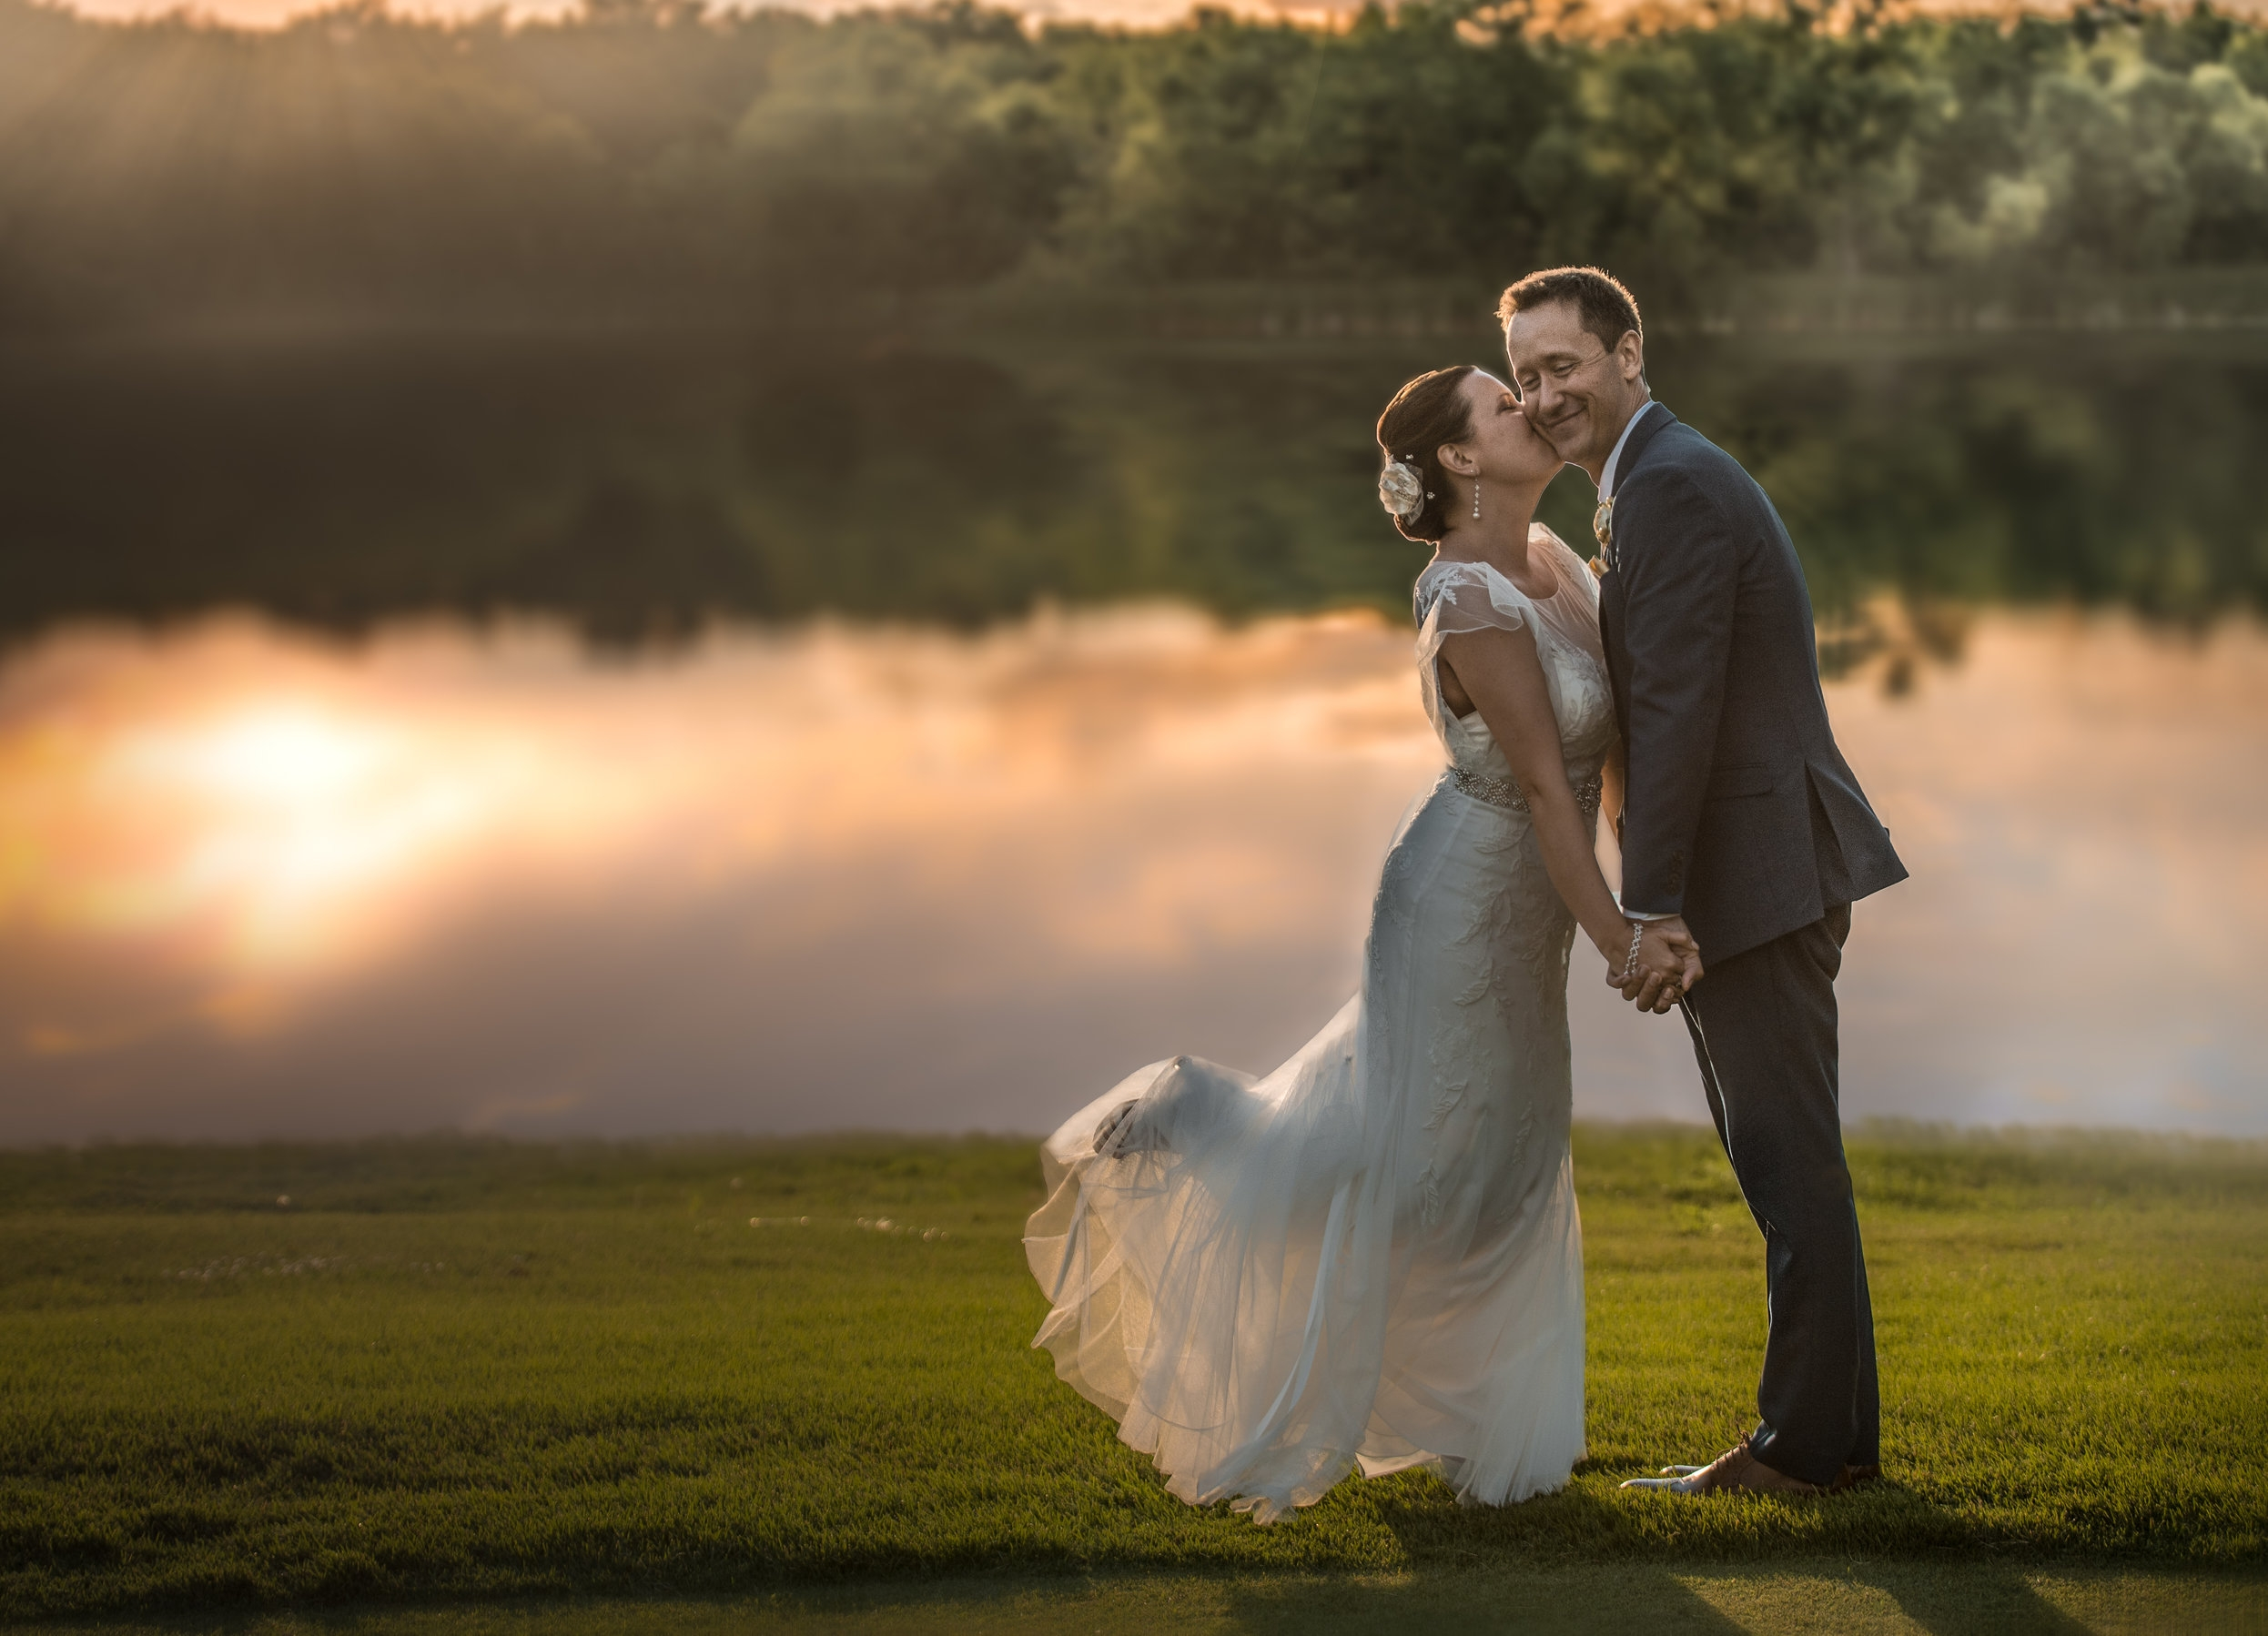 book your wedding consultation today - weddings packages start at $2,260